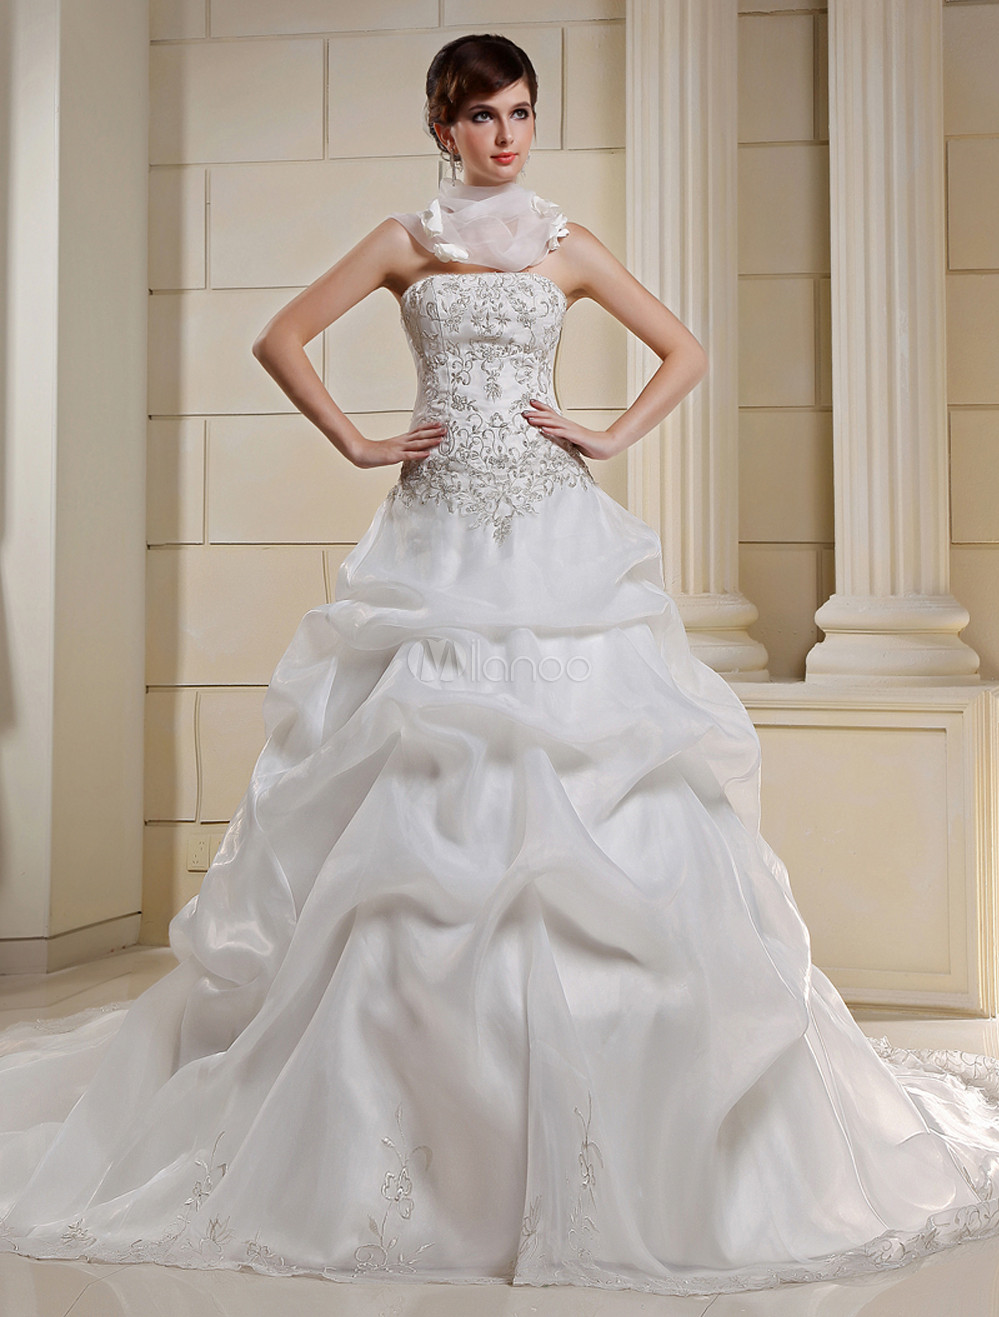 #Milanoo.com Ltd          #Wedding Dresses          #Style #Ball #Gown #Strapless #Beading #Embroidery #Satin #Organza #Wedding #Dress                      Style Ball Gown Strapless Beading Embroidery Satin Organza Wedding Dress                                http://www.snaproduct.com/product.aspx?PID=5682156